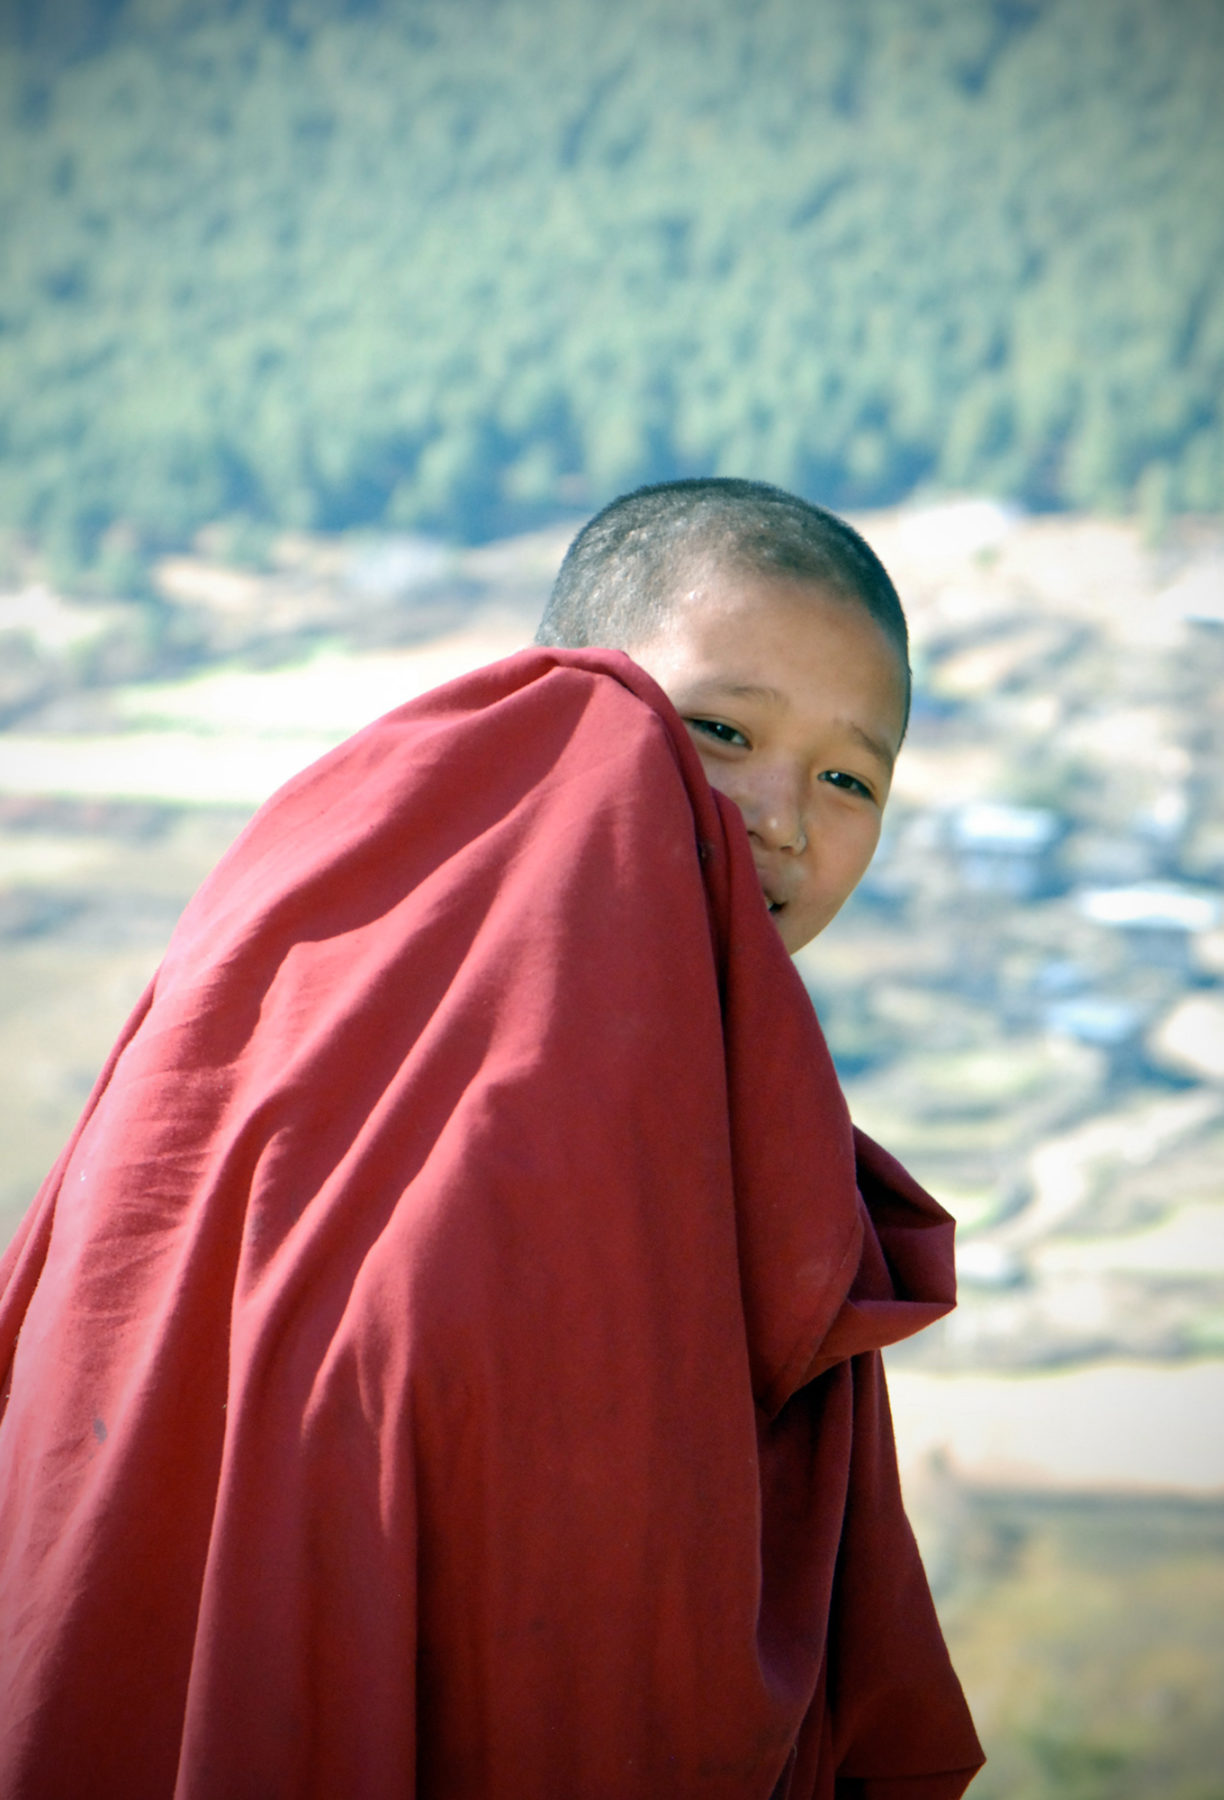 Young boy monk smiling shyly from behind his robe shielding his face i Bhutan